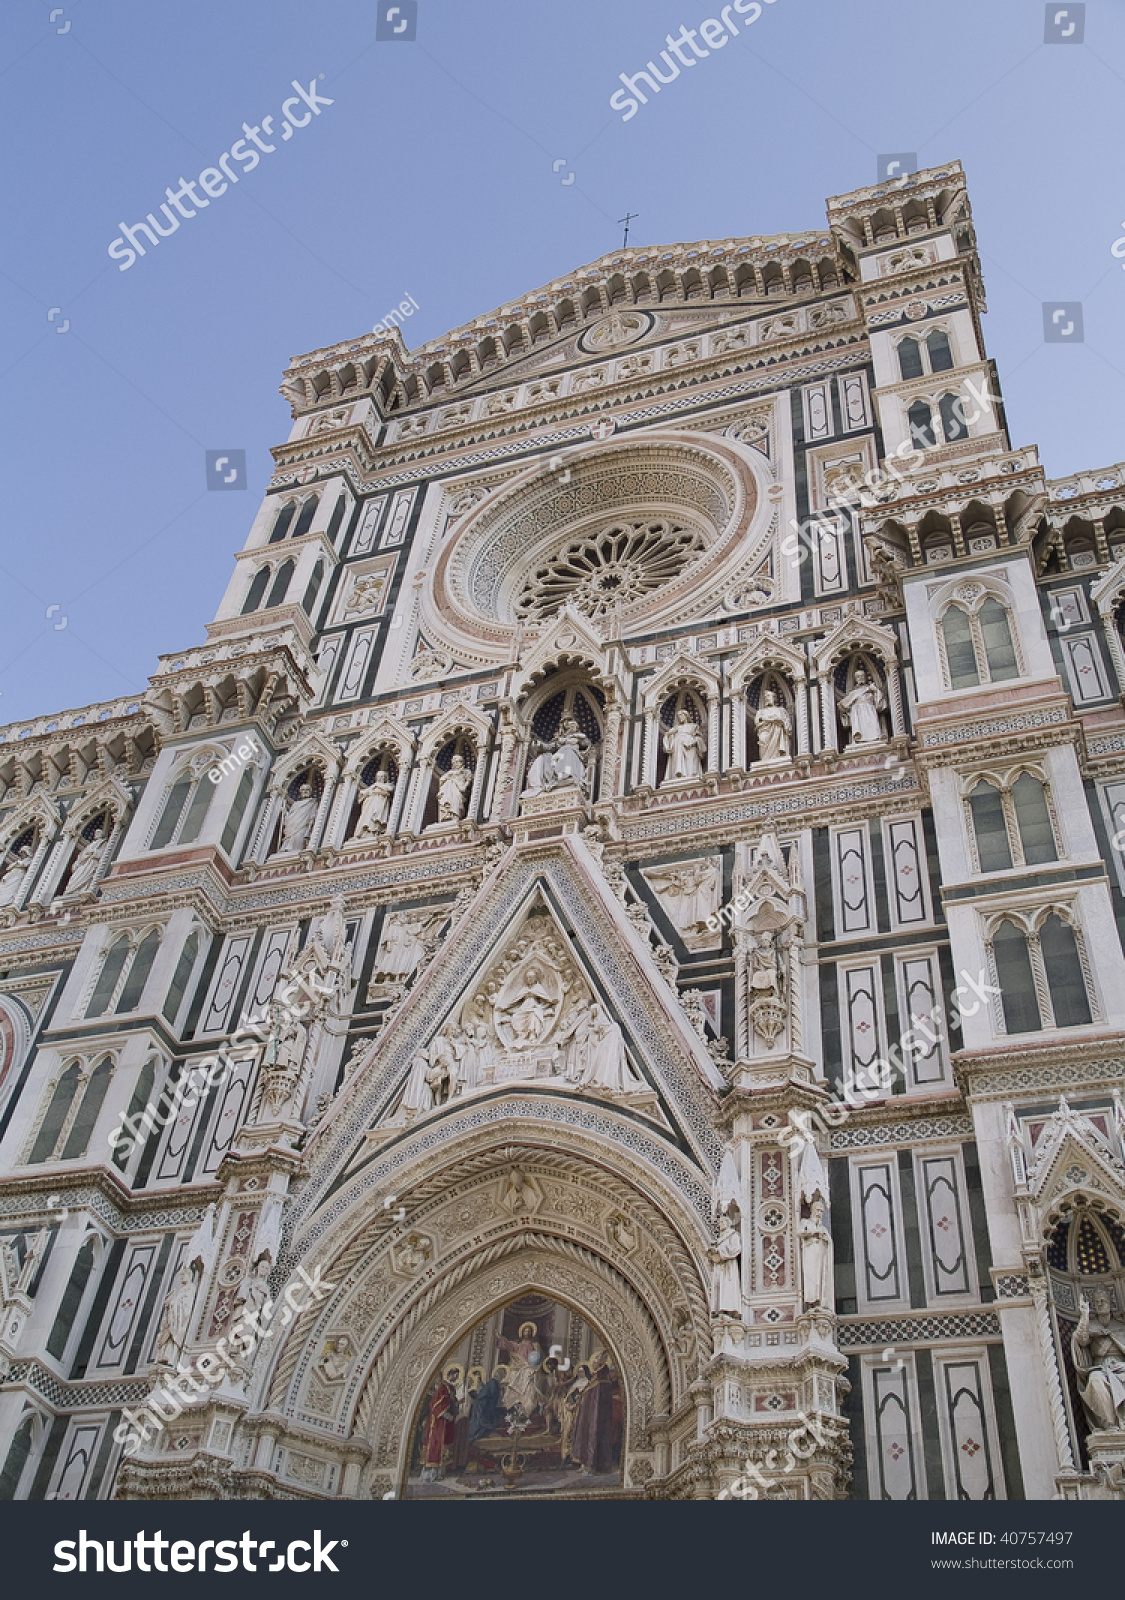 an analysis of the duomo of florence cathedral church The duomo di firenze the duomo di firenze, the cathedral of florence a cathedral church with a history going back to the early middle ages.